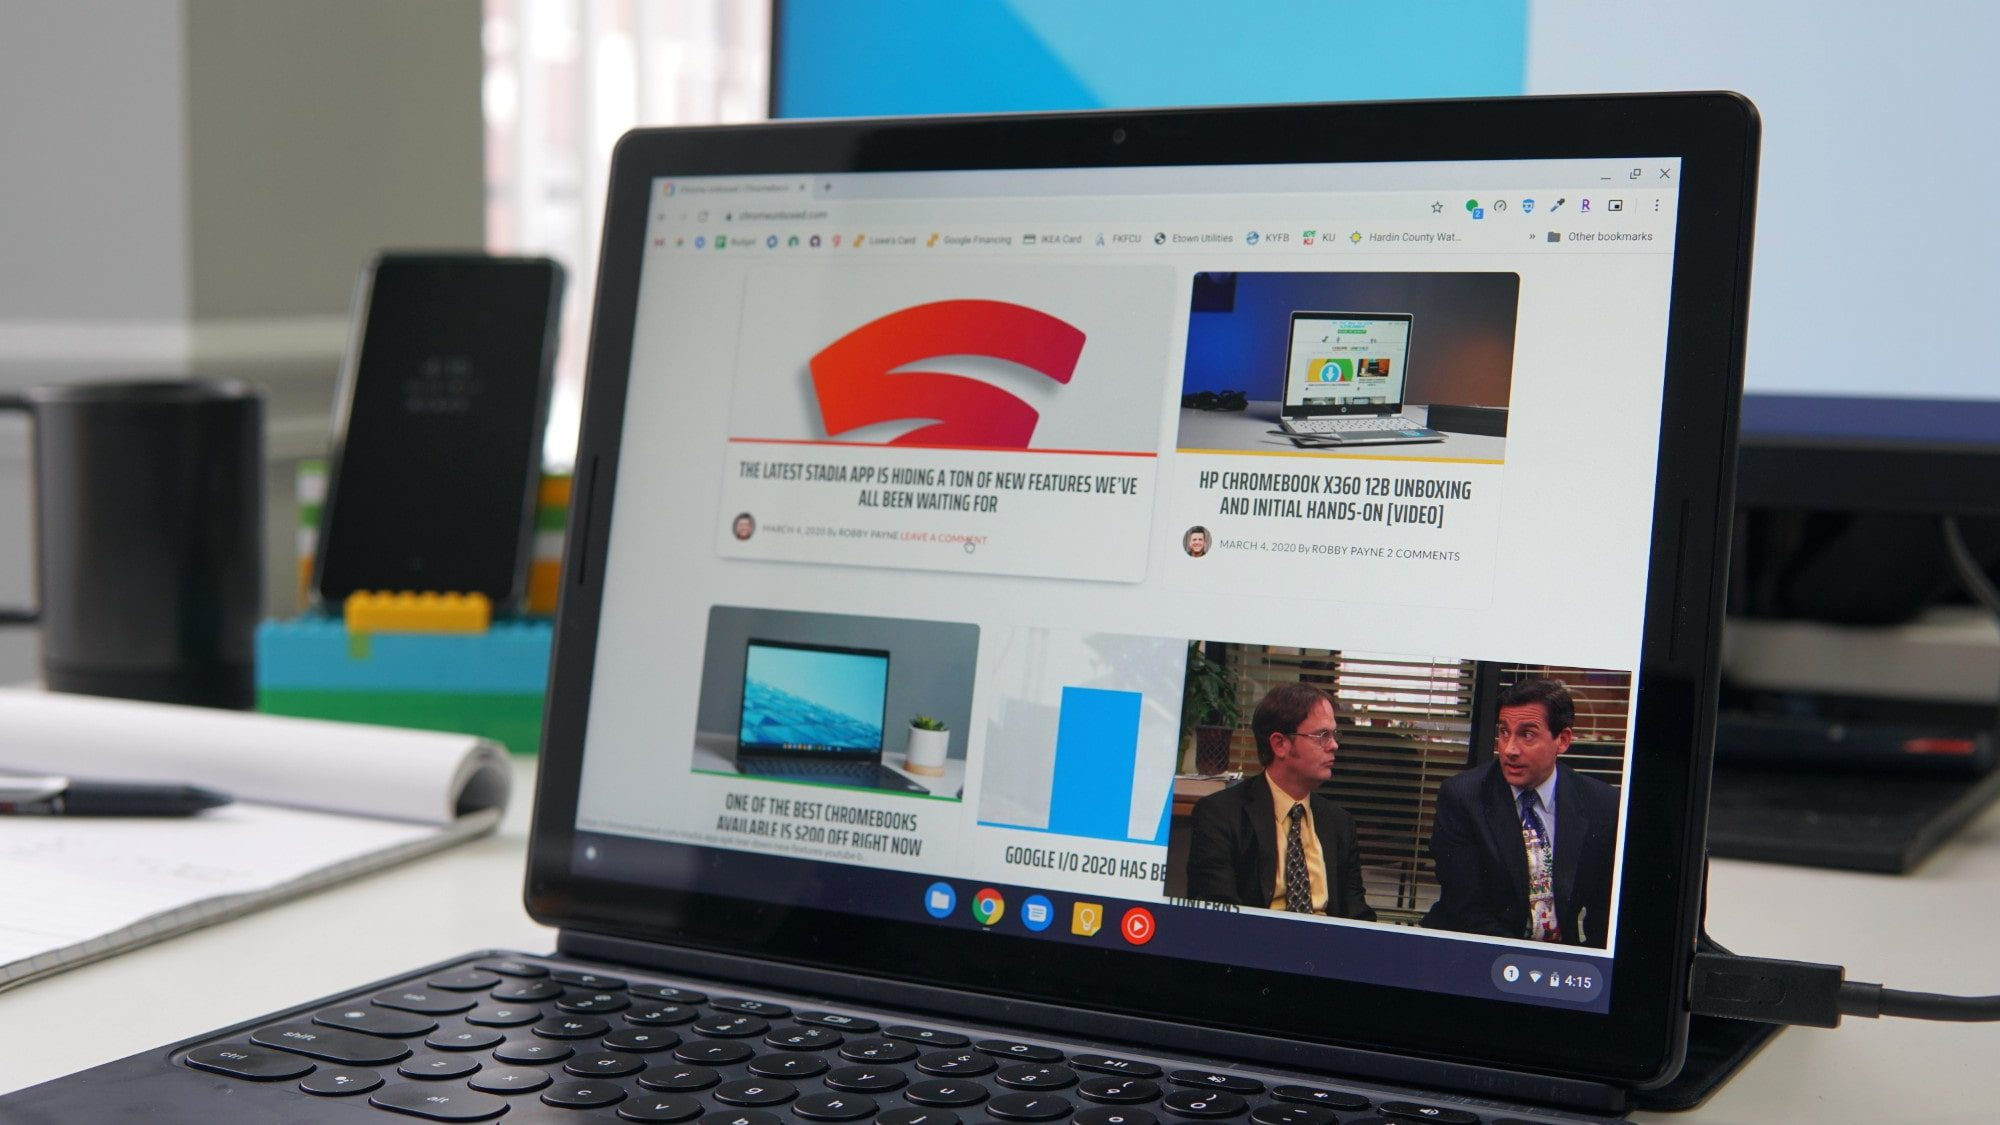 How to enable an easier picture-in-picture mode for Chromebooks